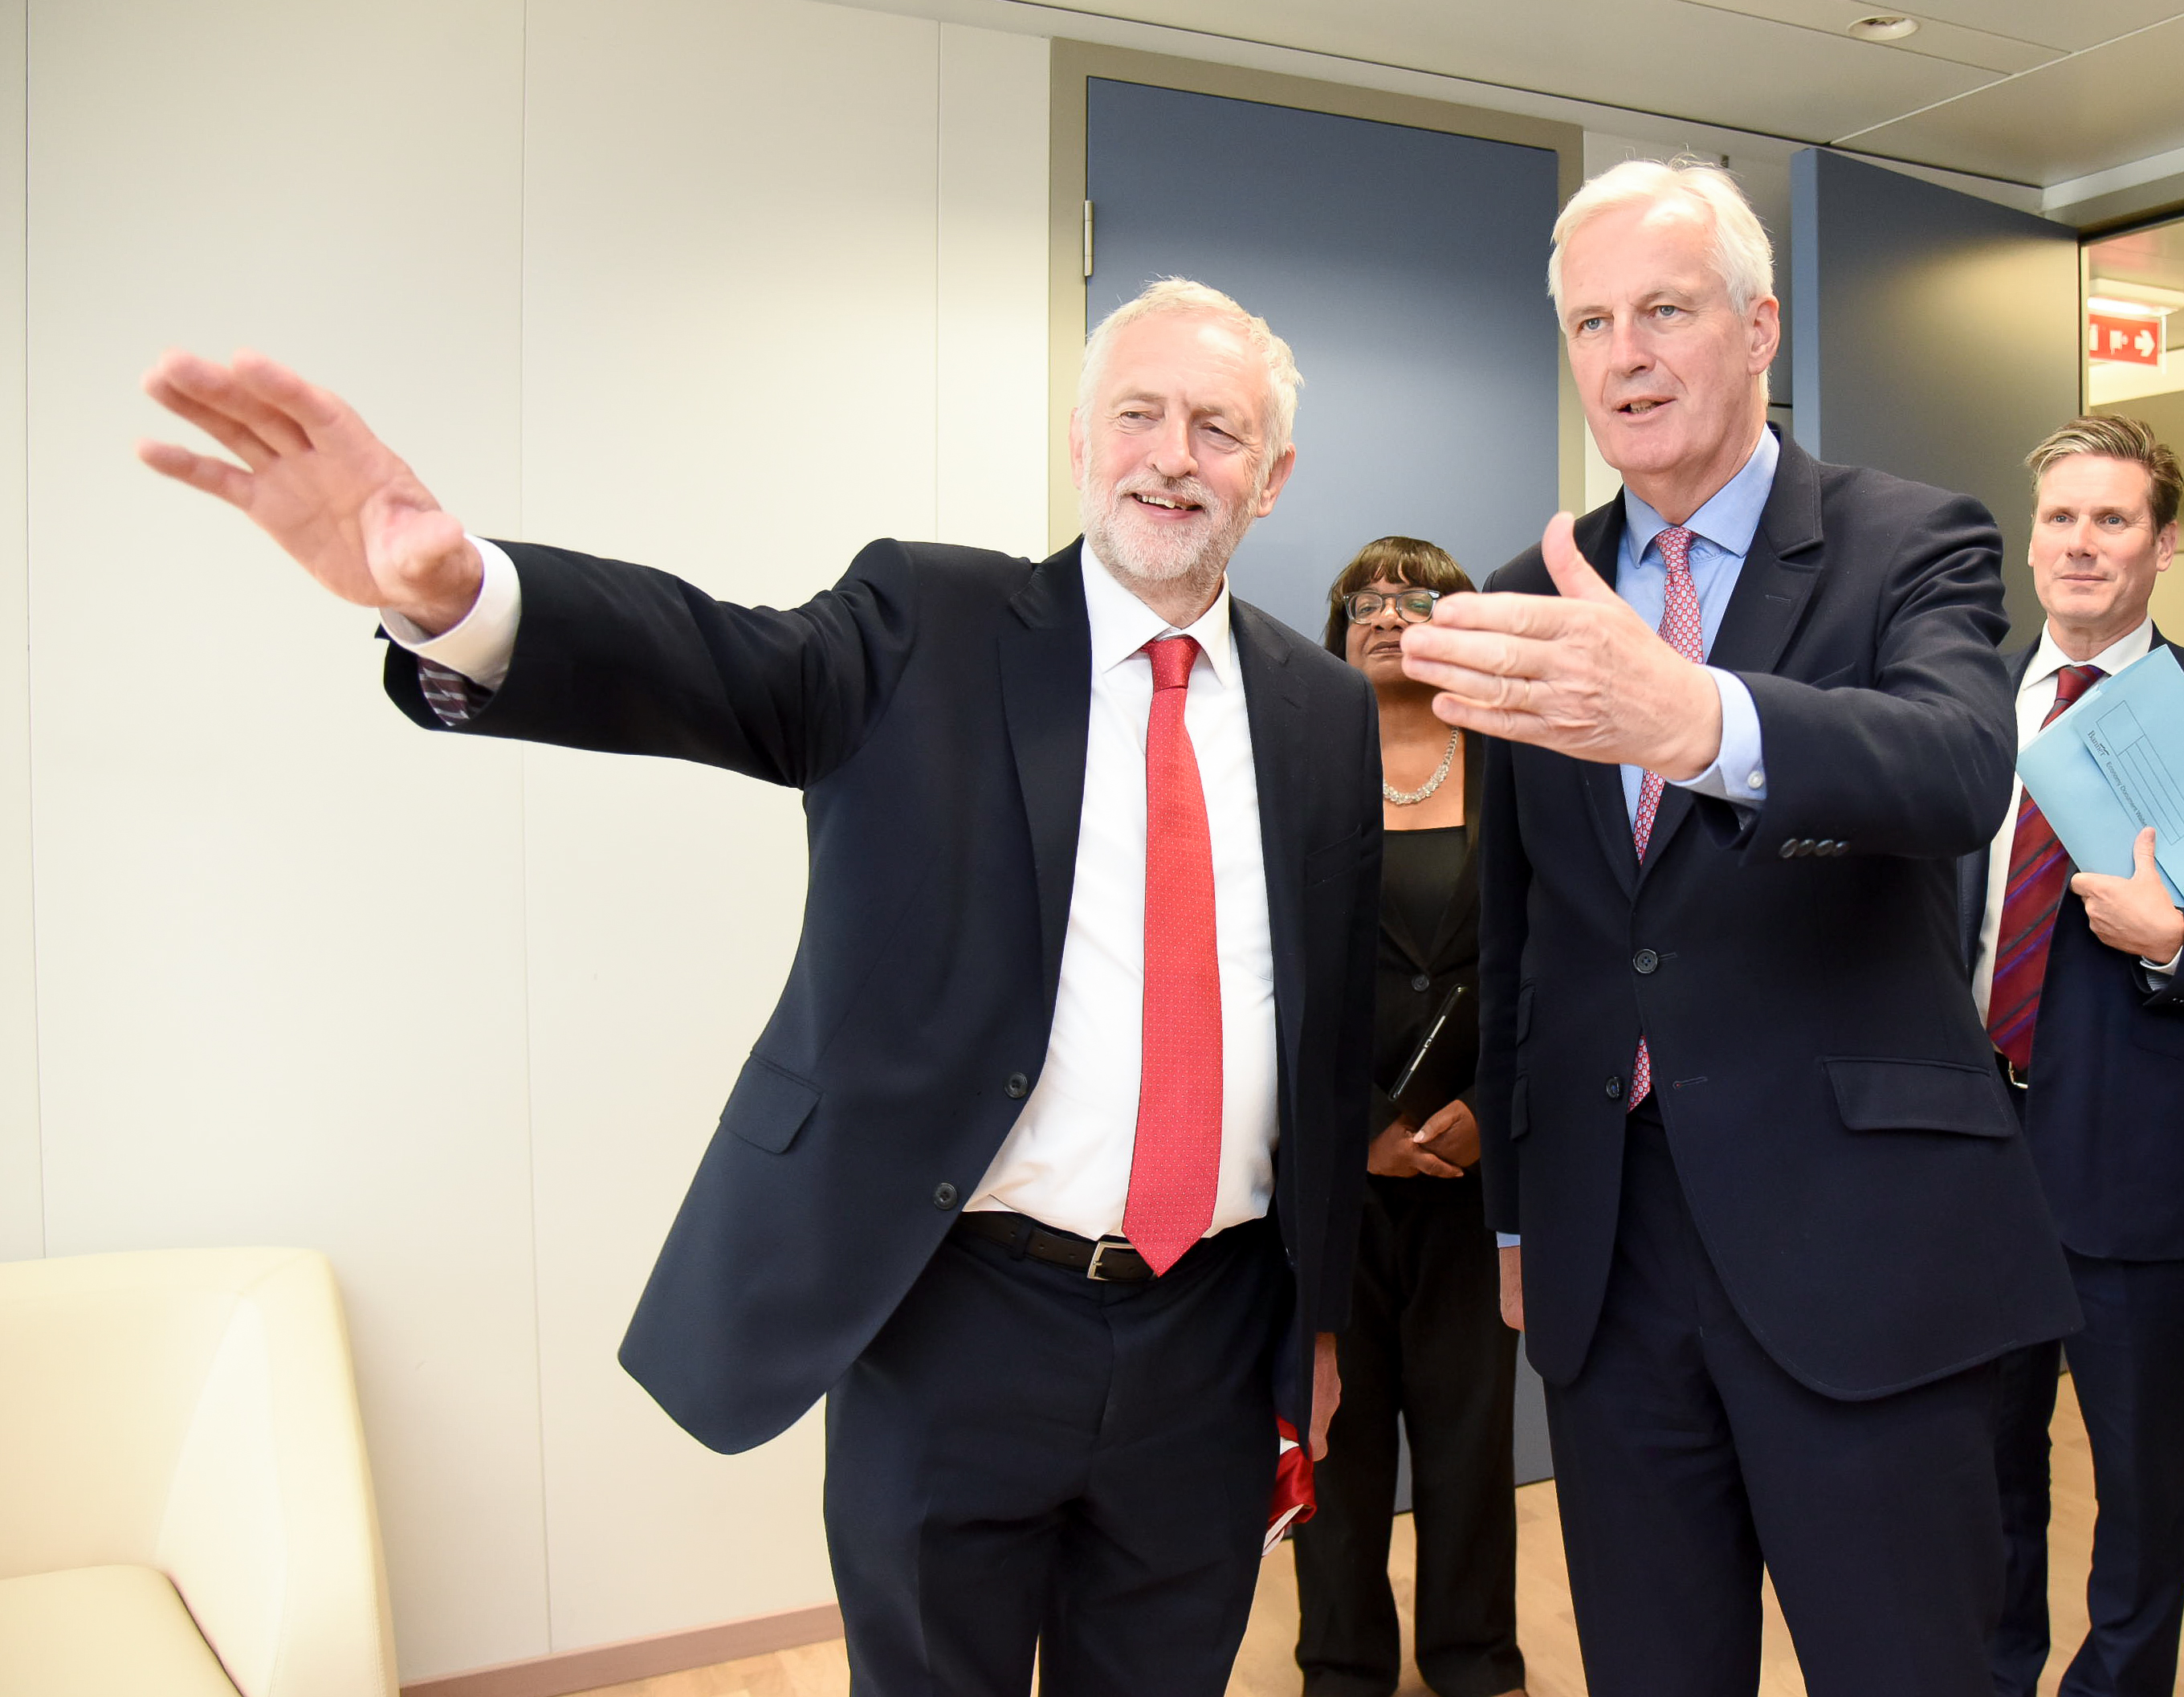 Brexit: Jeremy Corbyn 'ready' to lead negotiations if Government falls